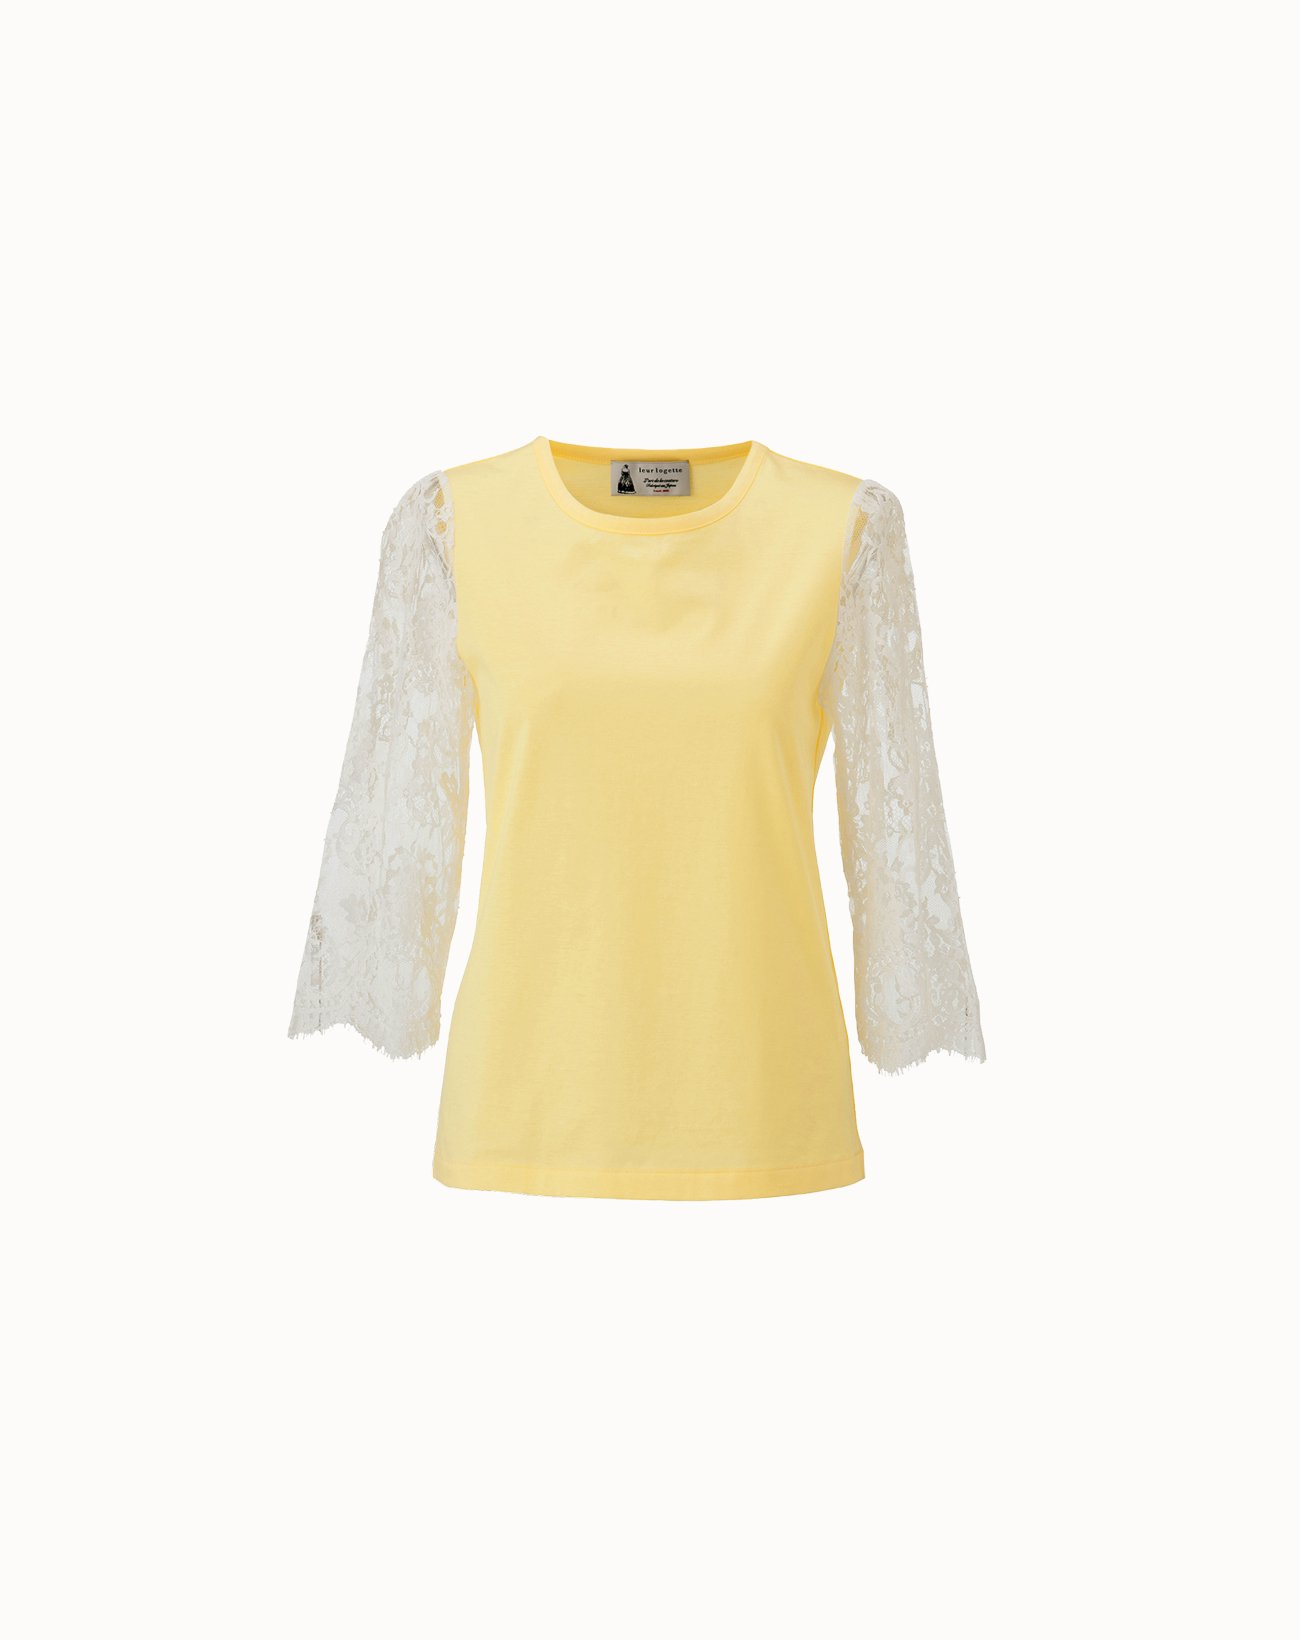 leur logette - Compact Cotton Sleeve Lace Top - Yellow